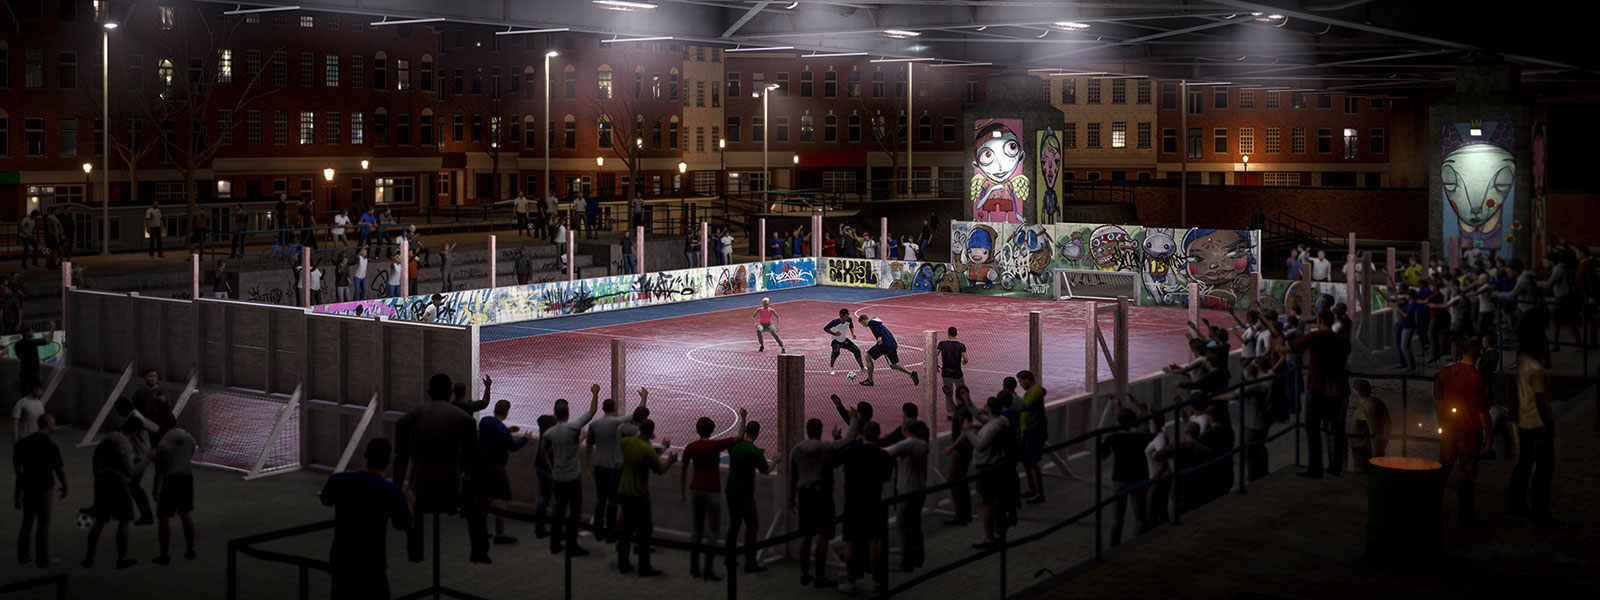 Characters playing street soccer in a cage while many people watch